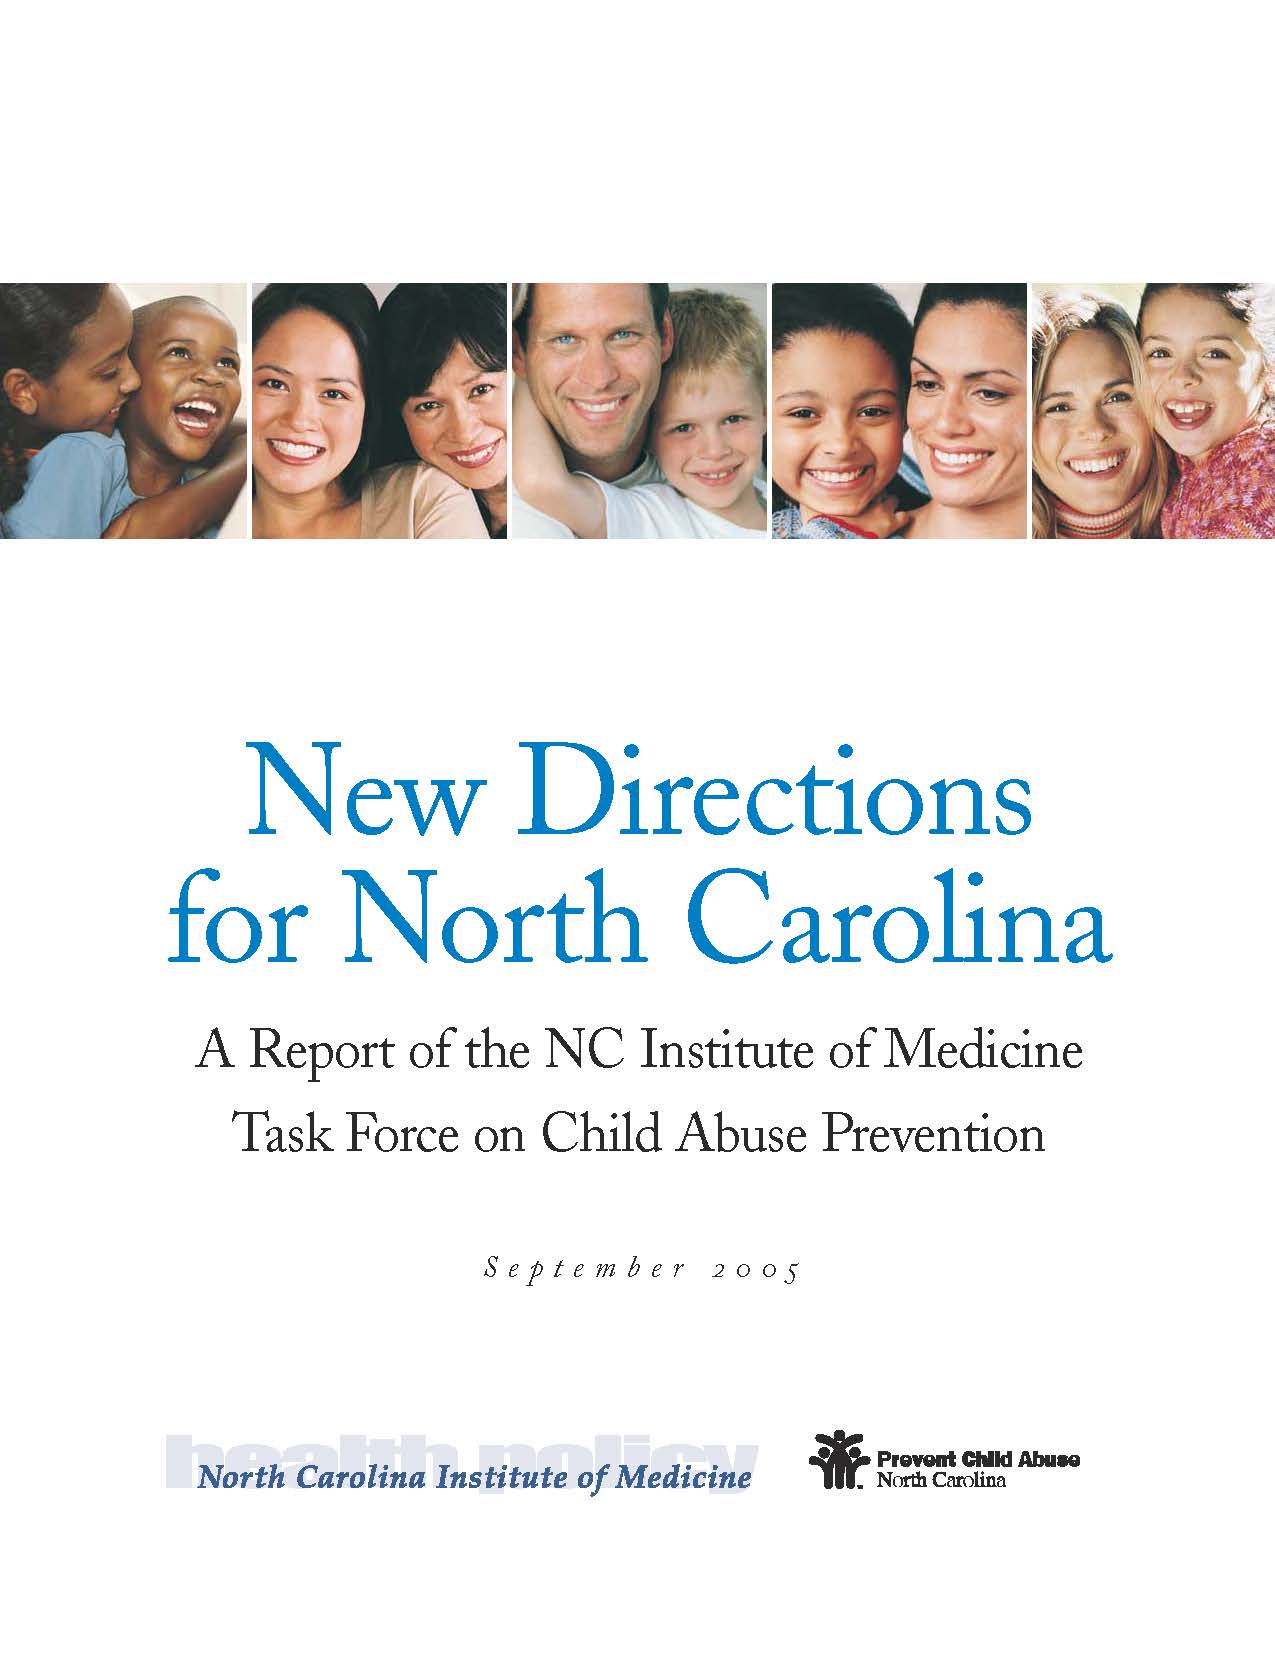 Report Cover: New Directions for NC, a report of the NCIOM task force on child abuse prevention